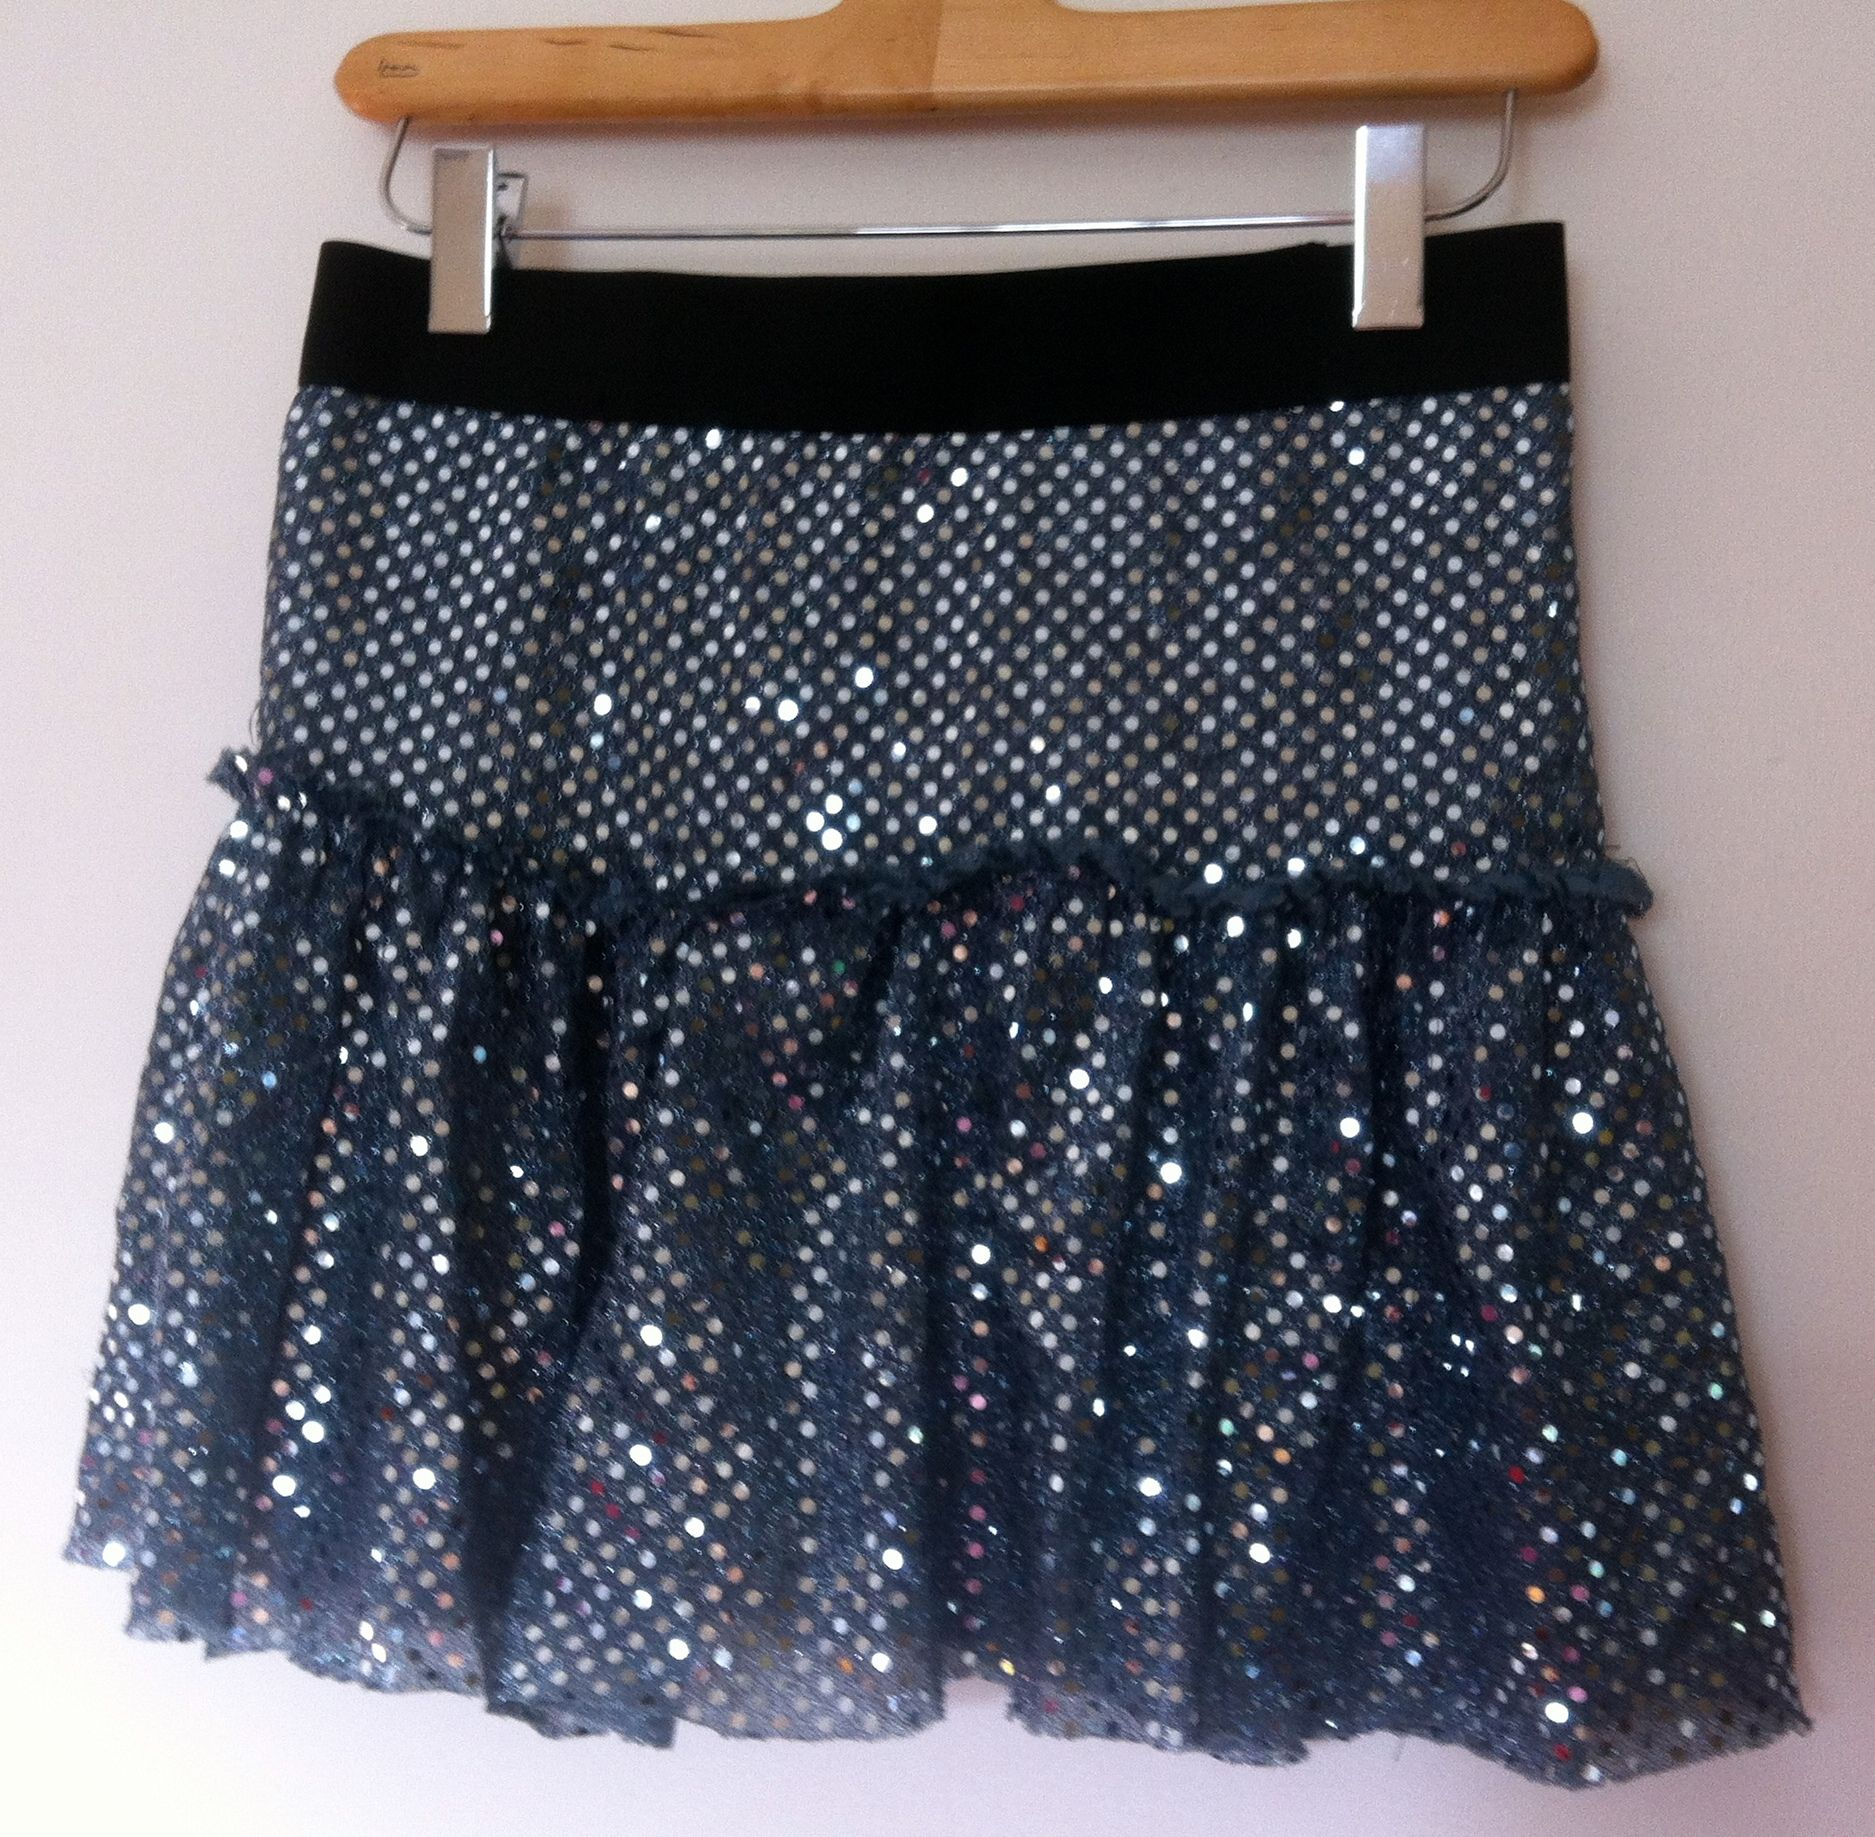 DIY sparkle skirt pattern.....definitely wishing I knew how to sew.